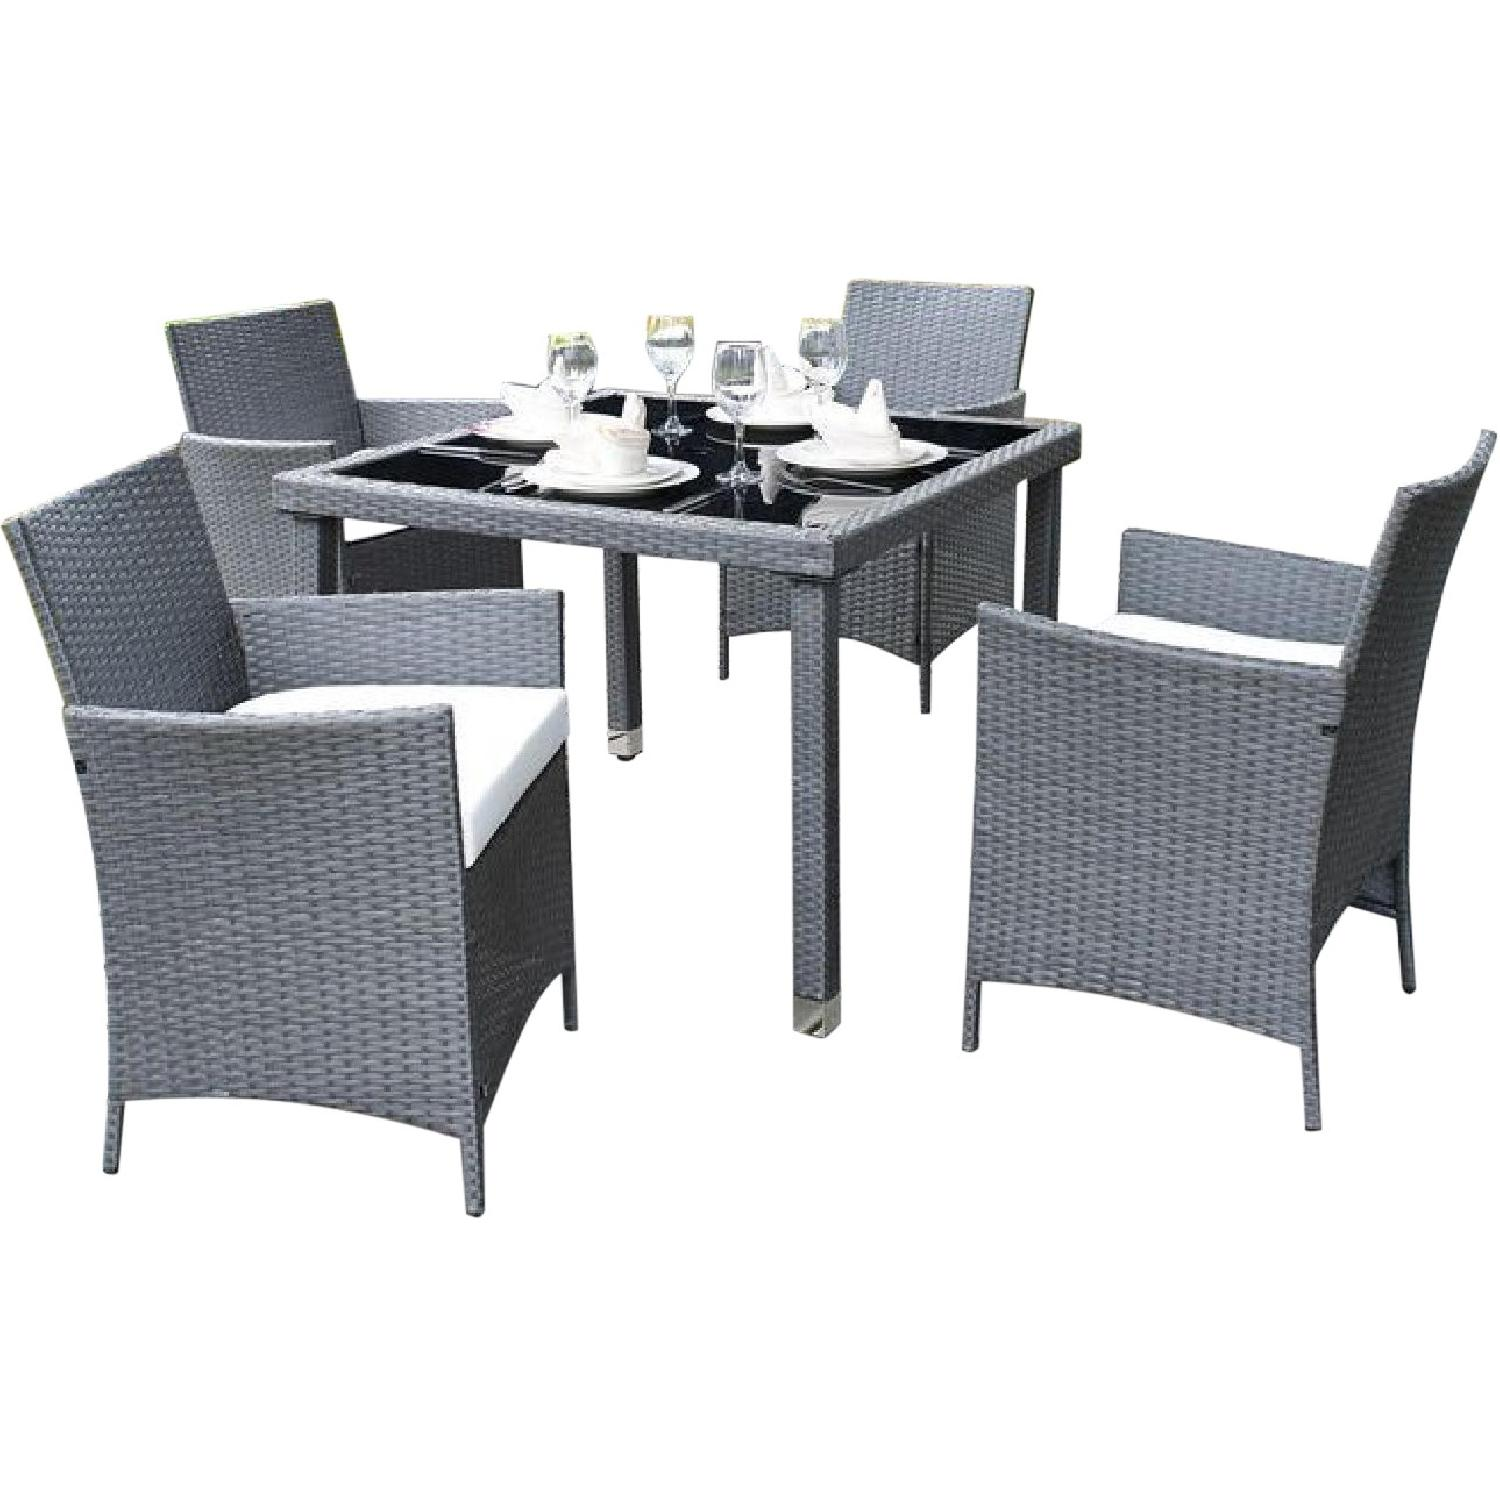 Mercer 3 Piece Outdoor Dining Set w/ Cushion - image-0